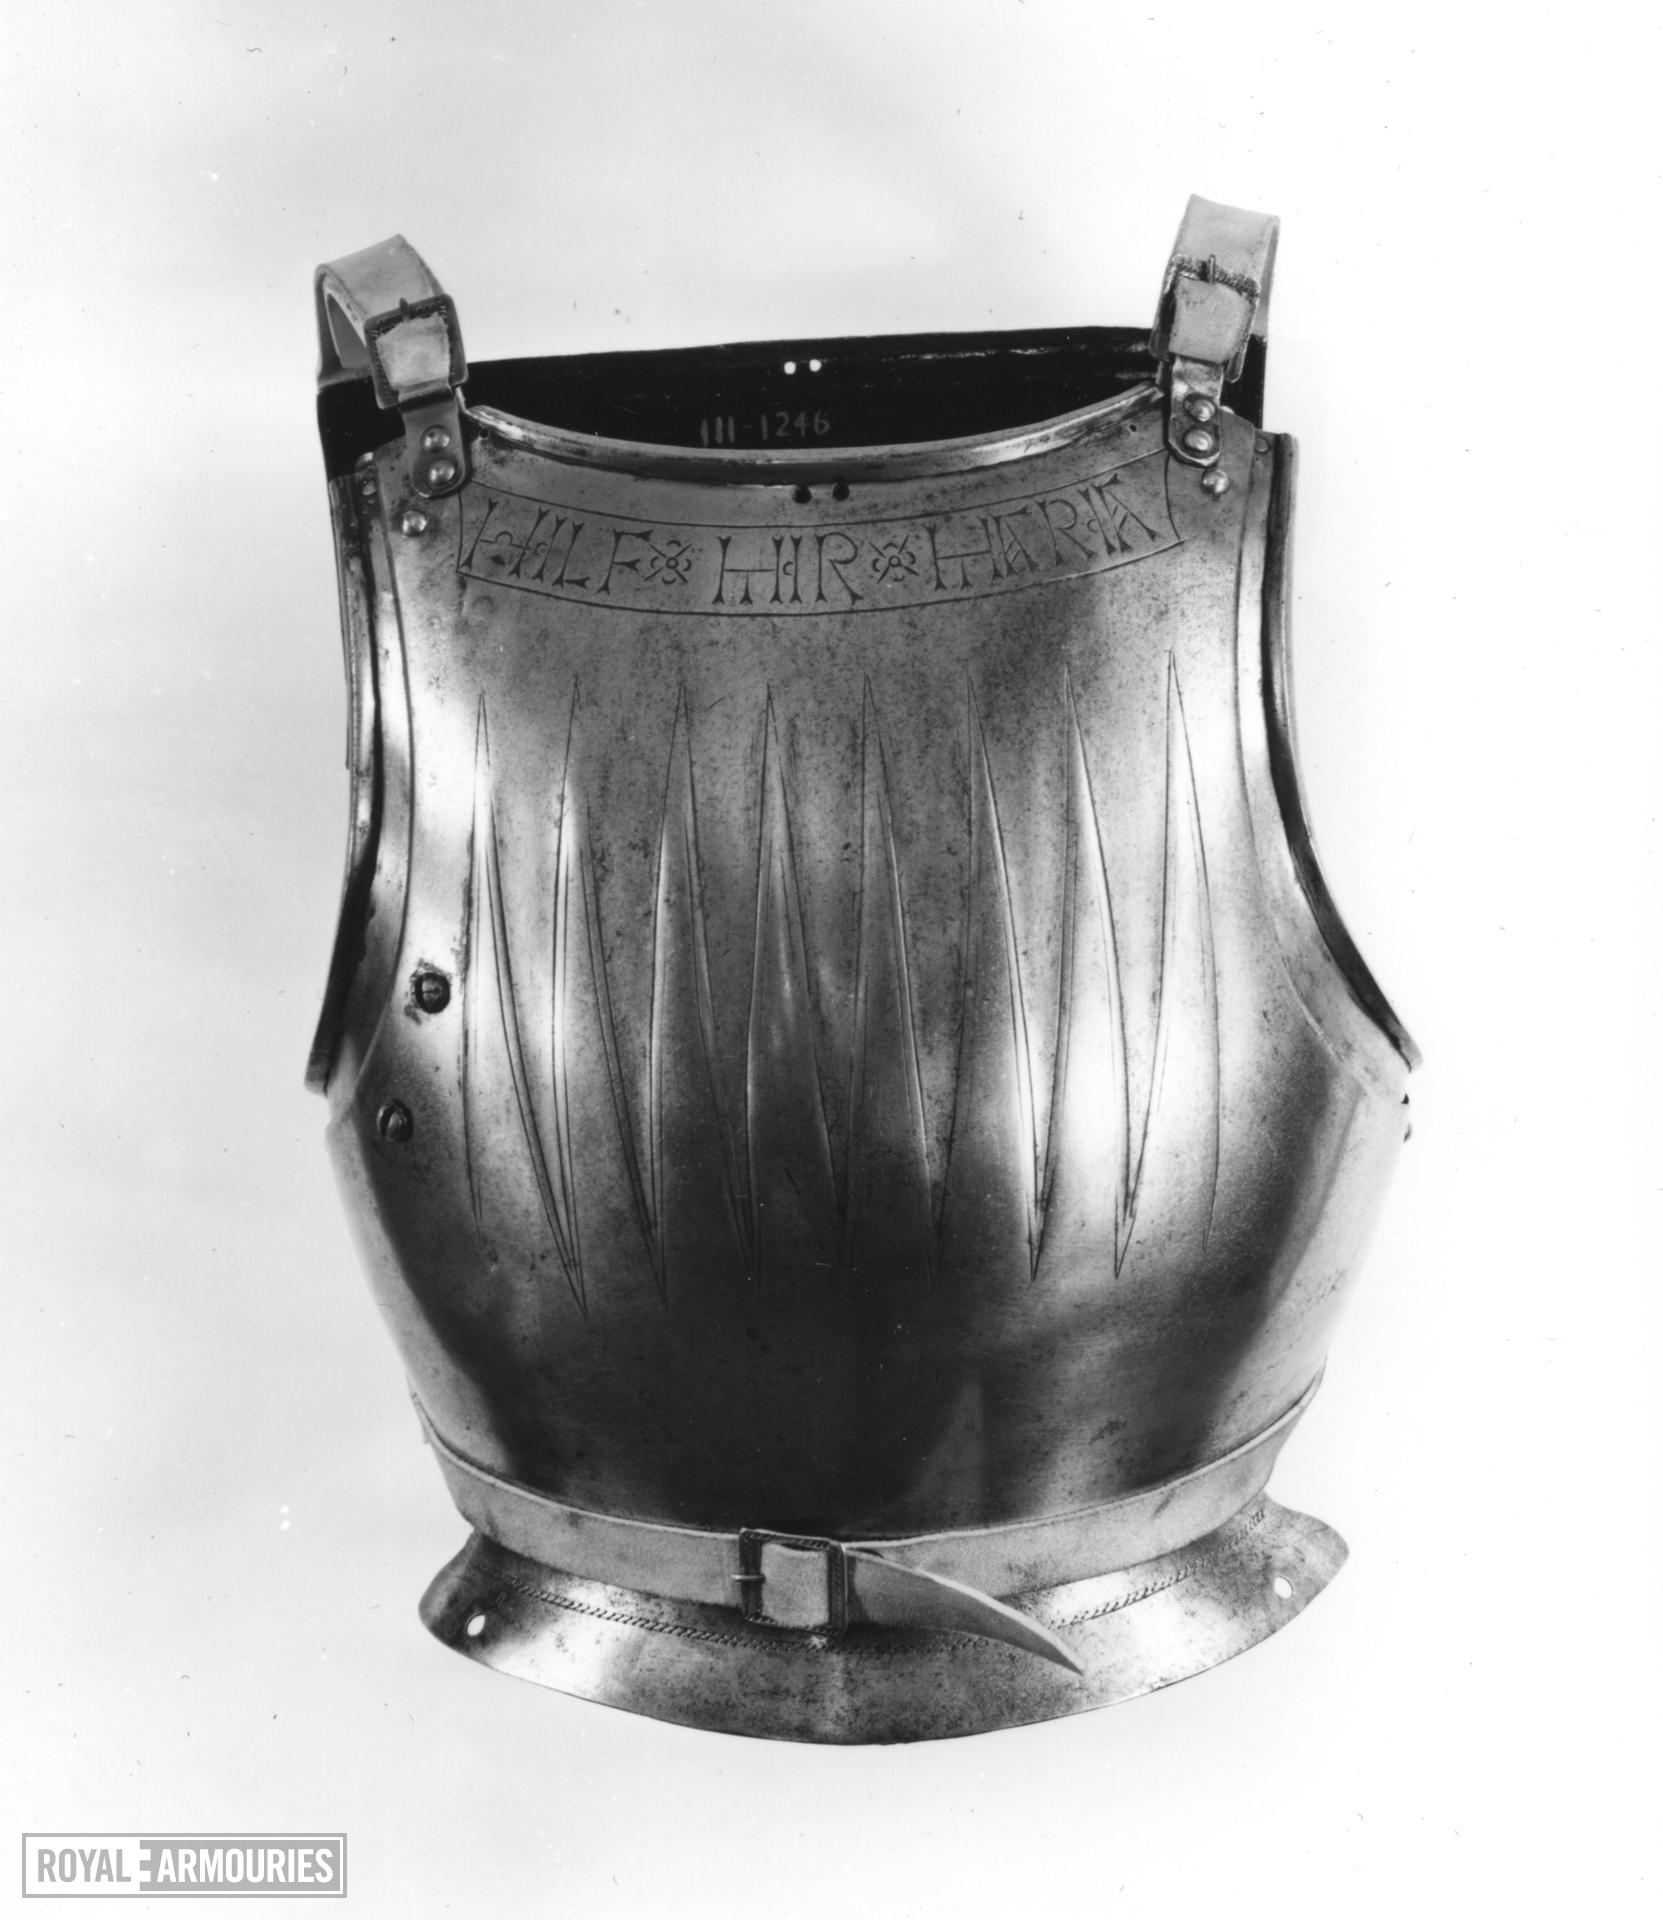 Cuirass with 'Wolf's tooth' decoration